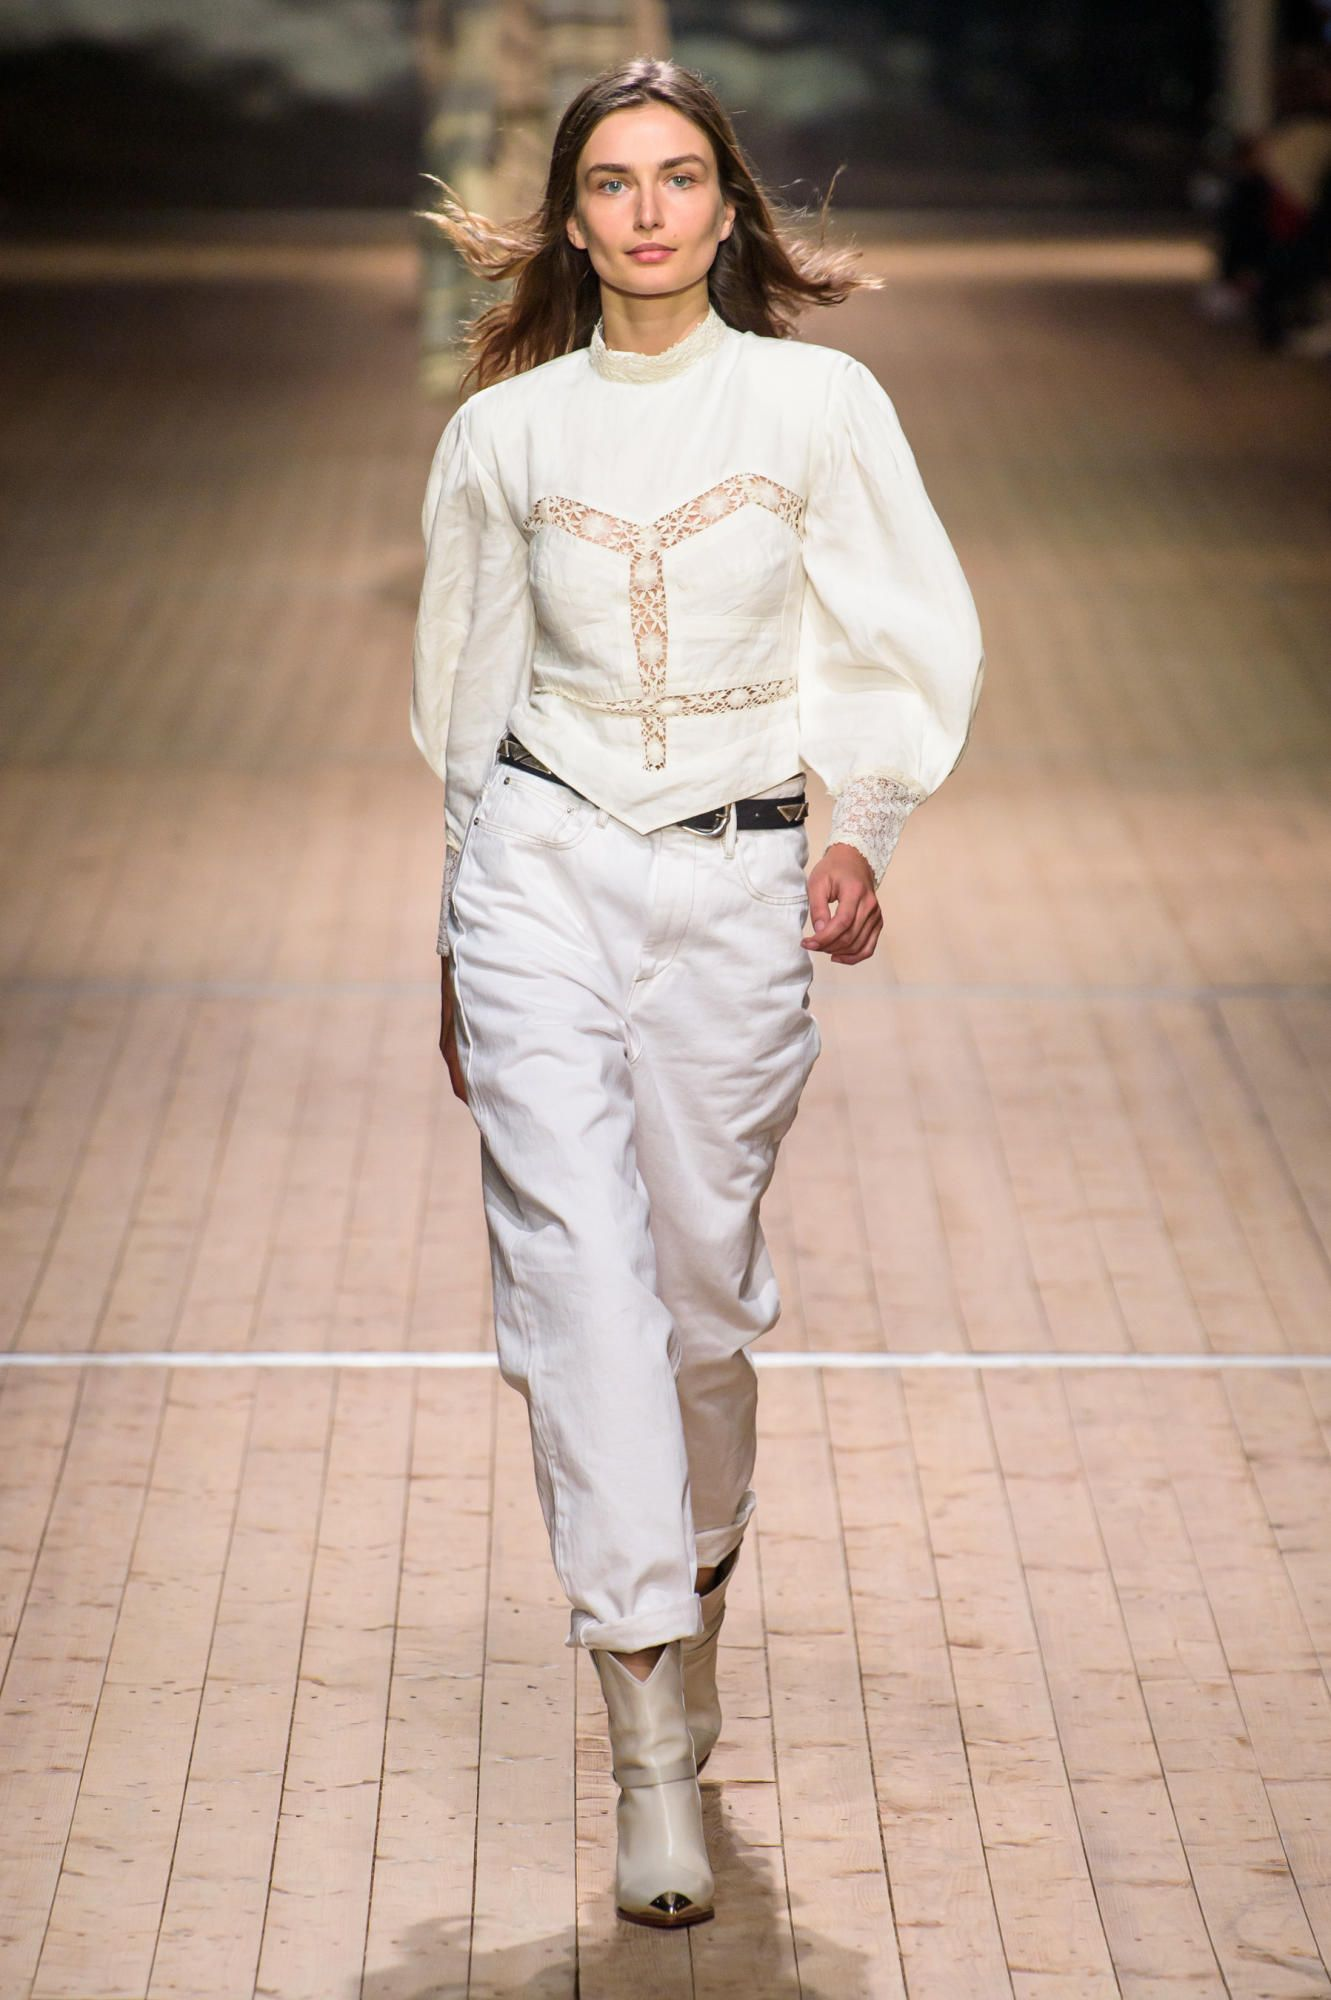 Isabel Marant Takes The French Girl Out West For Fall 2018